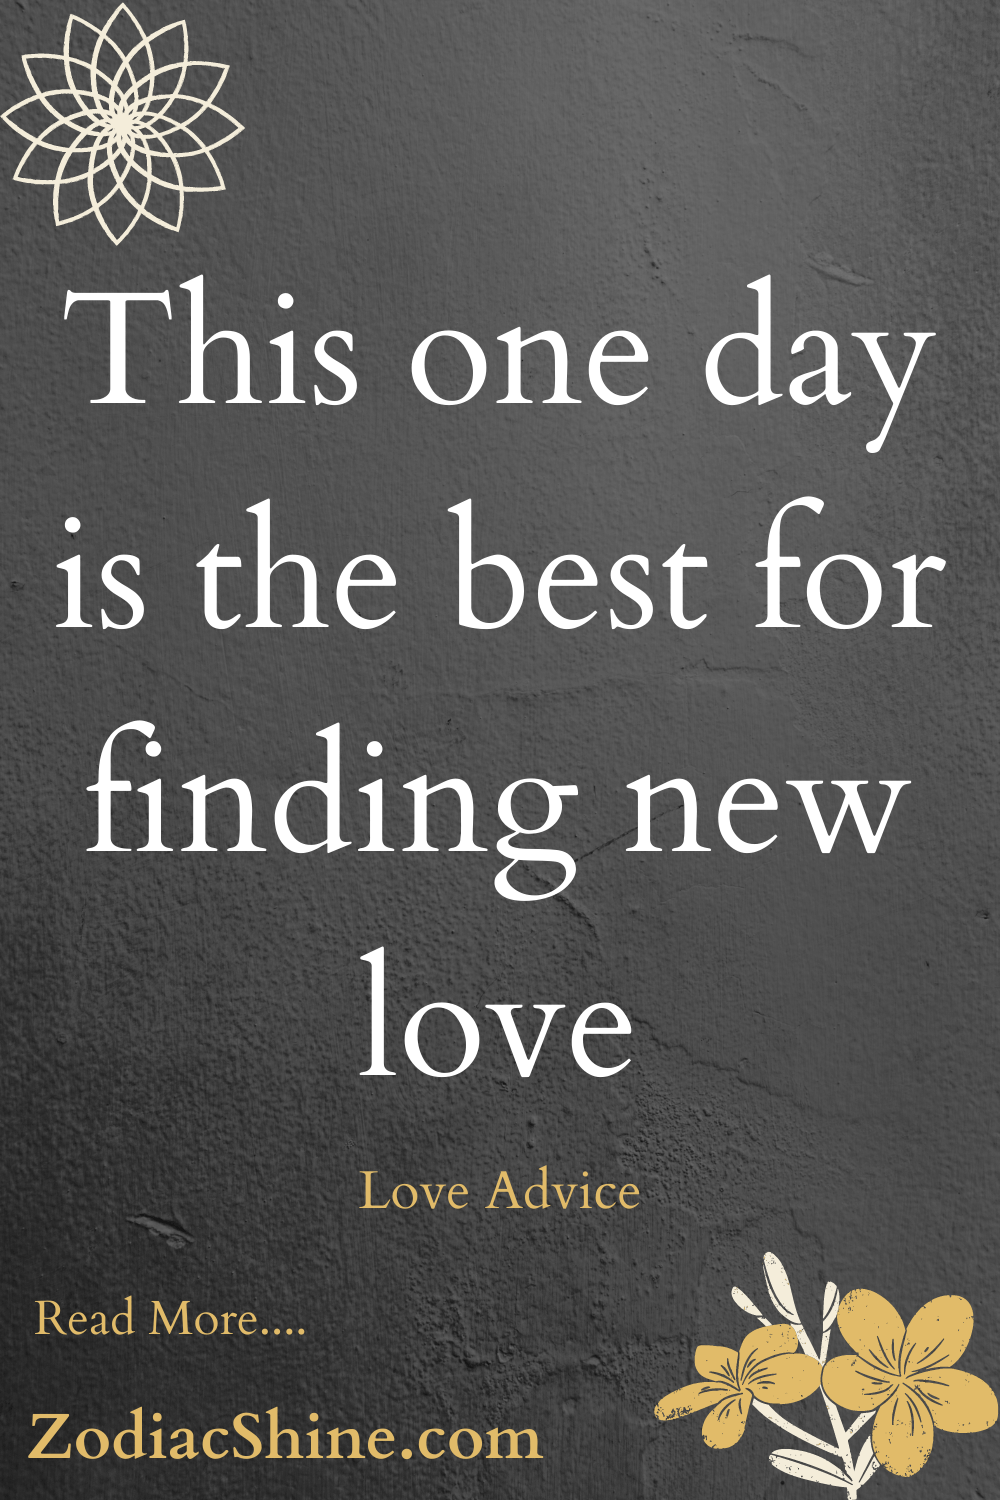 This one day is the best for finding new love